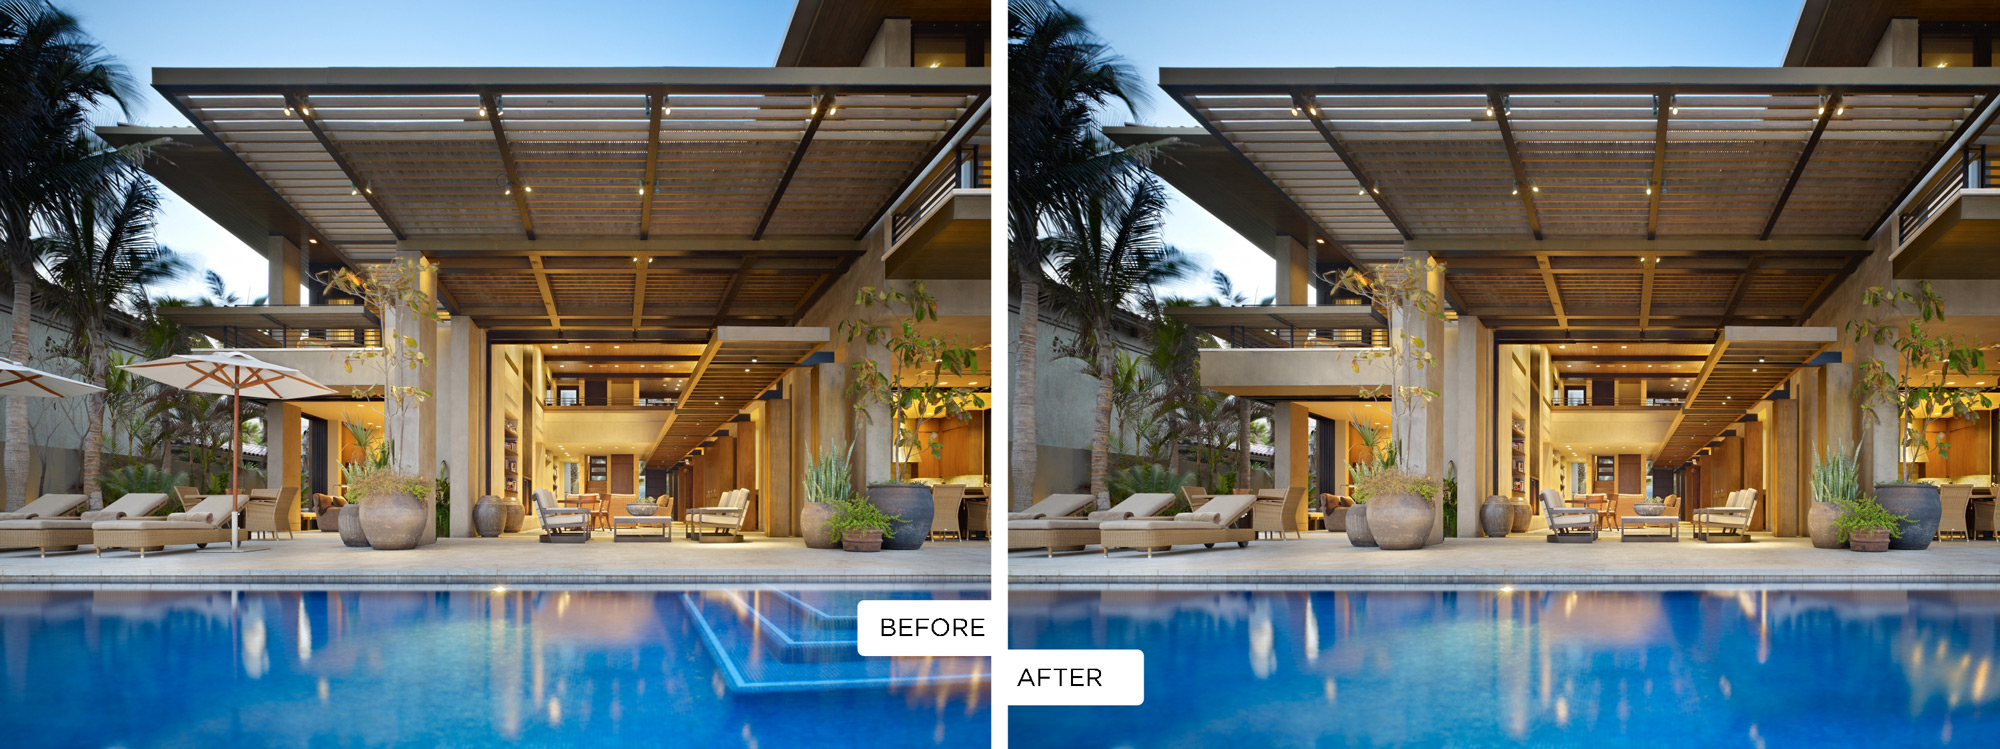 Baja-Beach-House_1_before-after